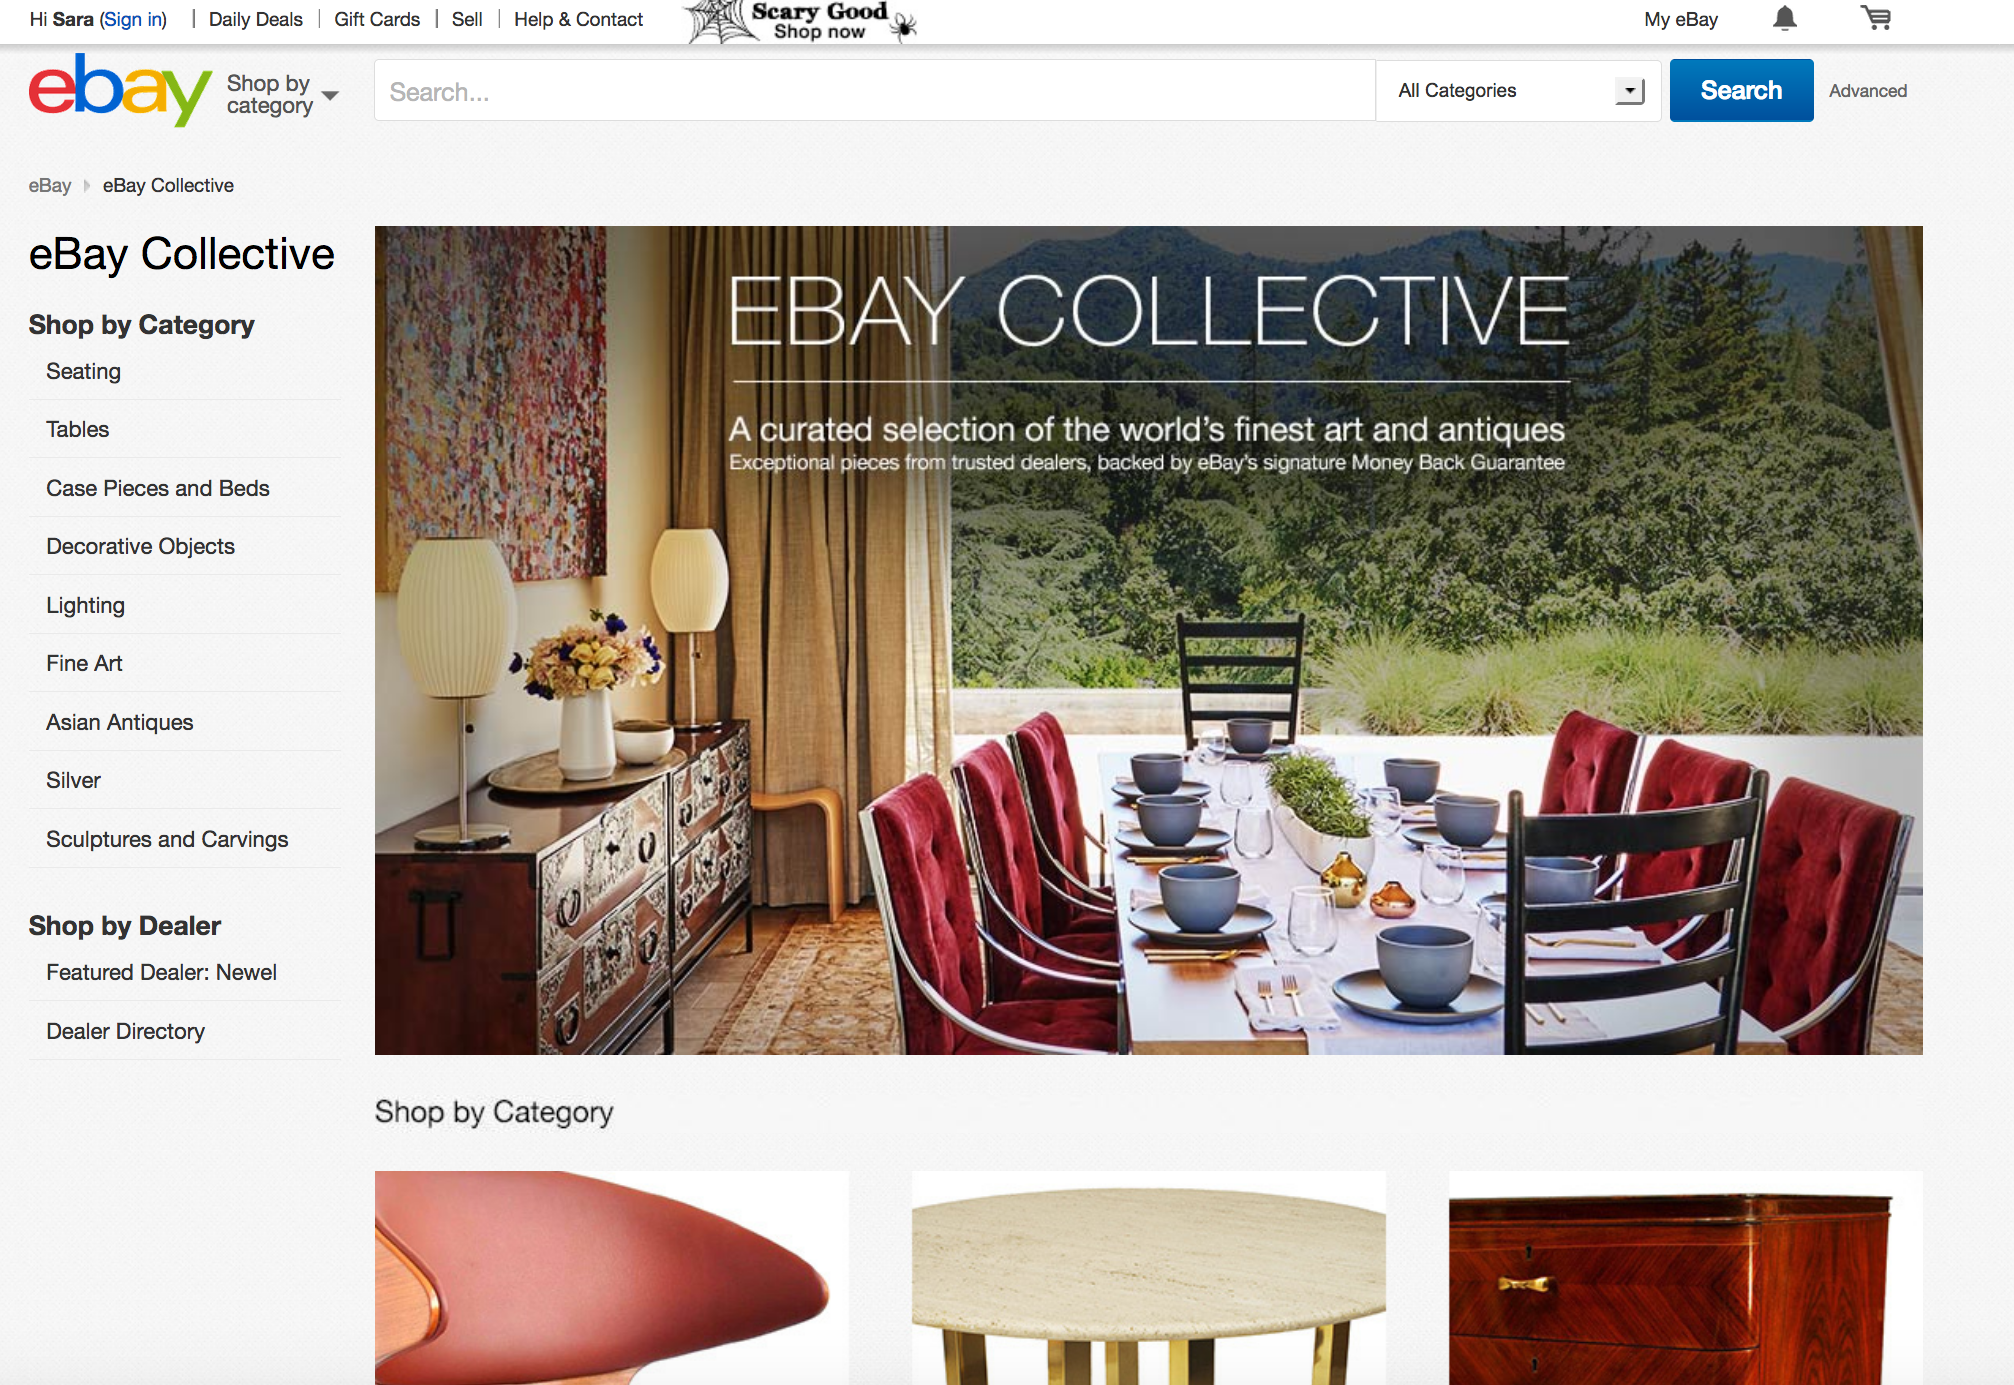 eBay s new high end furniture shop eBay Collective includes a